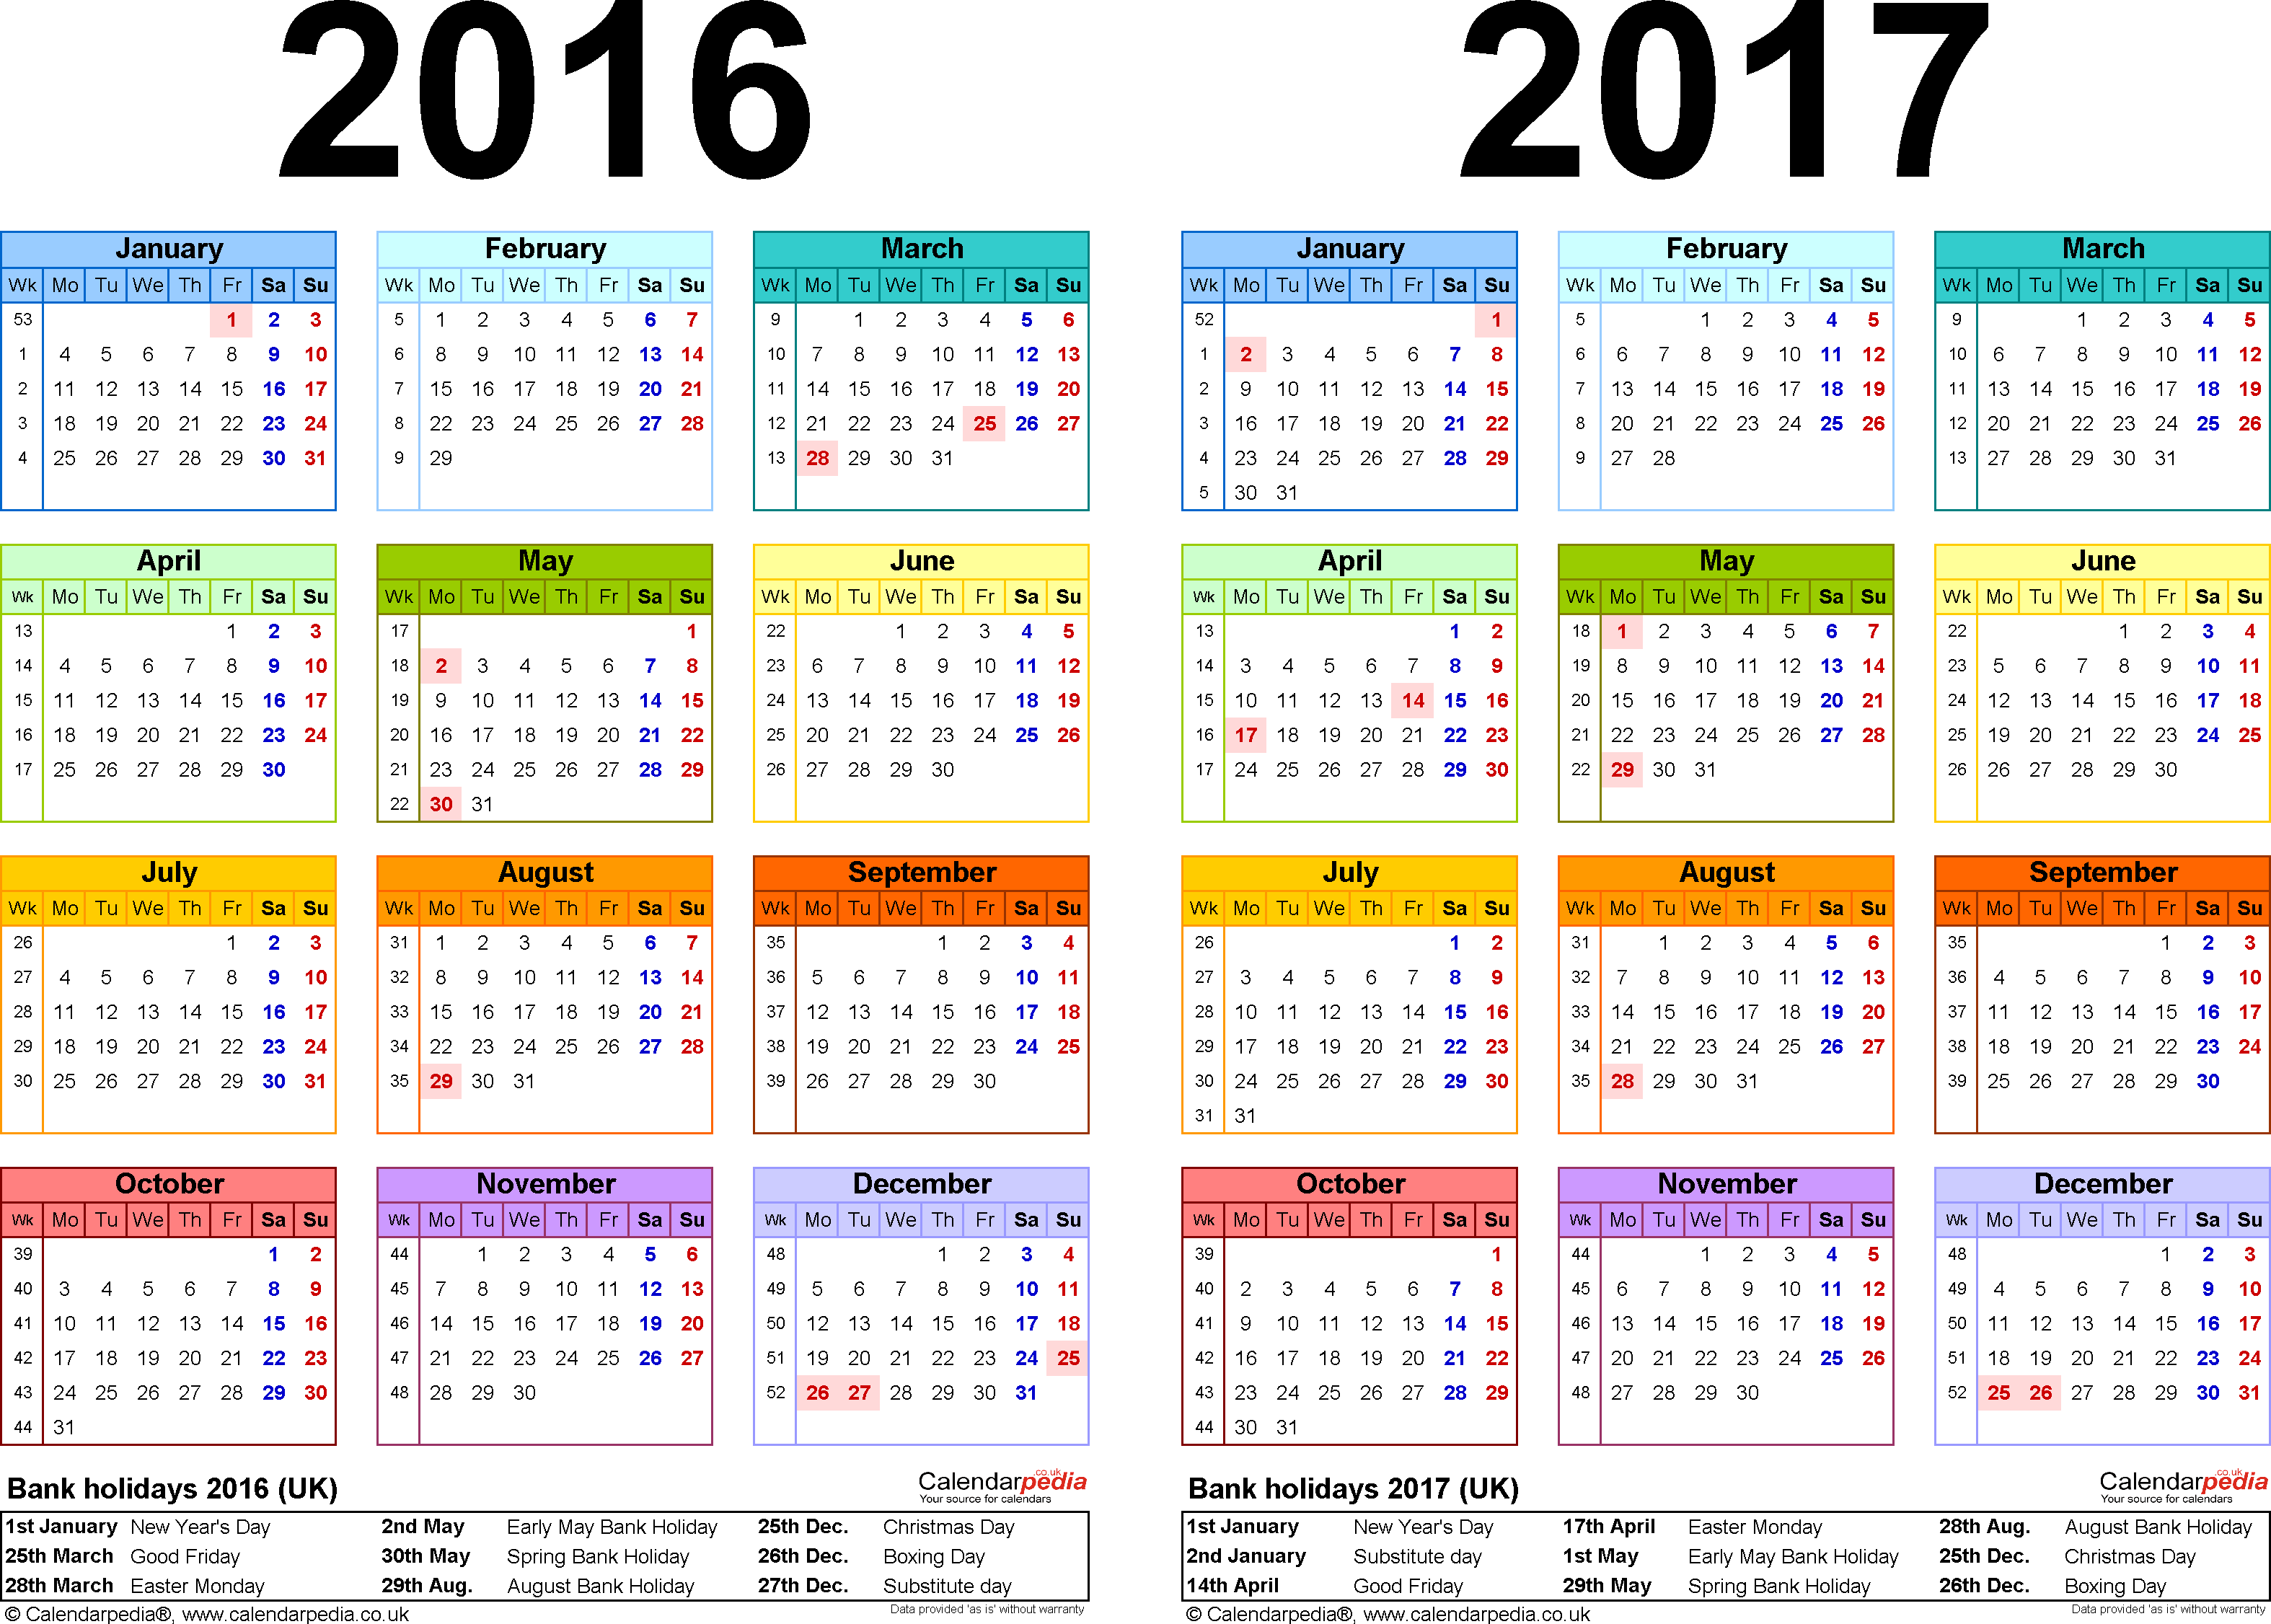 Download Template 2: Word template for two year calendar 2016/2017 in colour (landscape orientation, 1 page, A4)